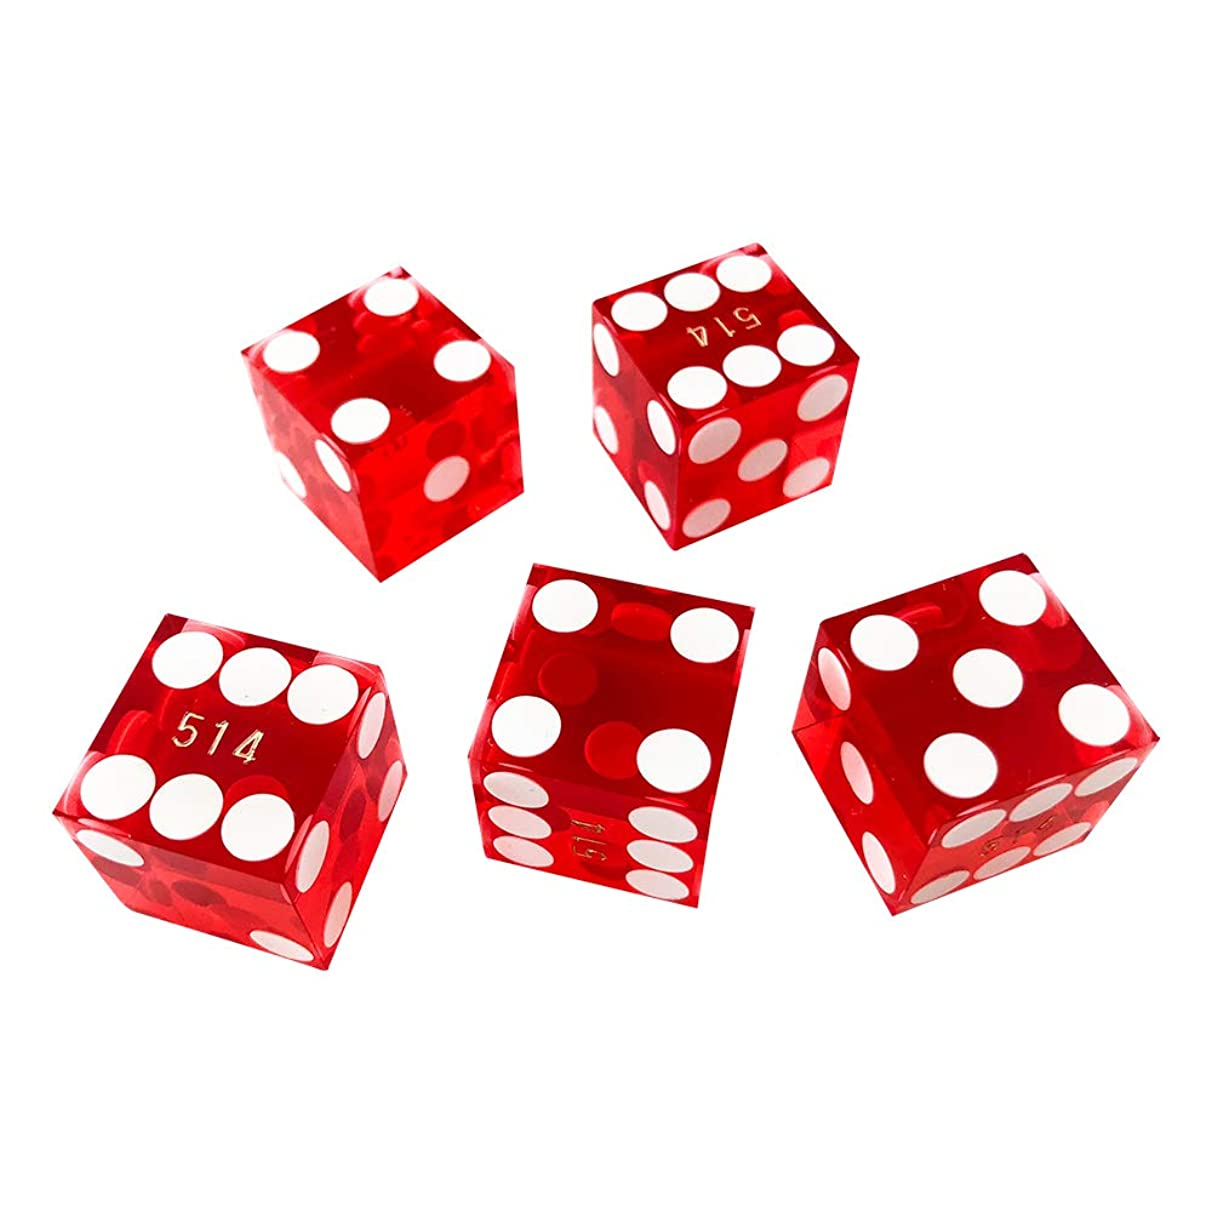 YH Poker 16mm Seriallized Casino dice with Razor Edges and Matchiong Serial Numbers Set of 5- Red